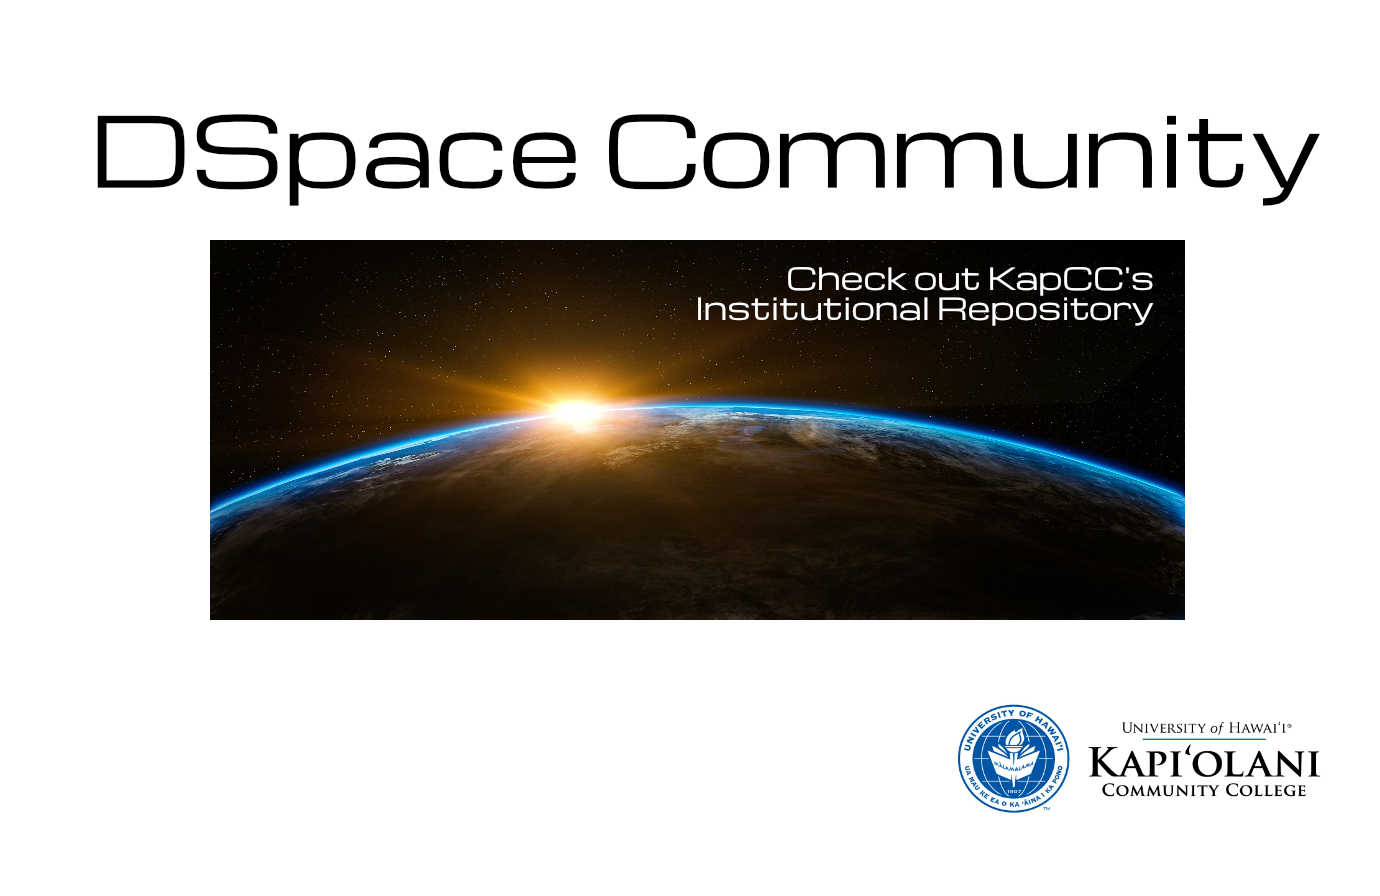 Earth in space with 'DSpace Community' above it